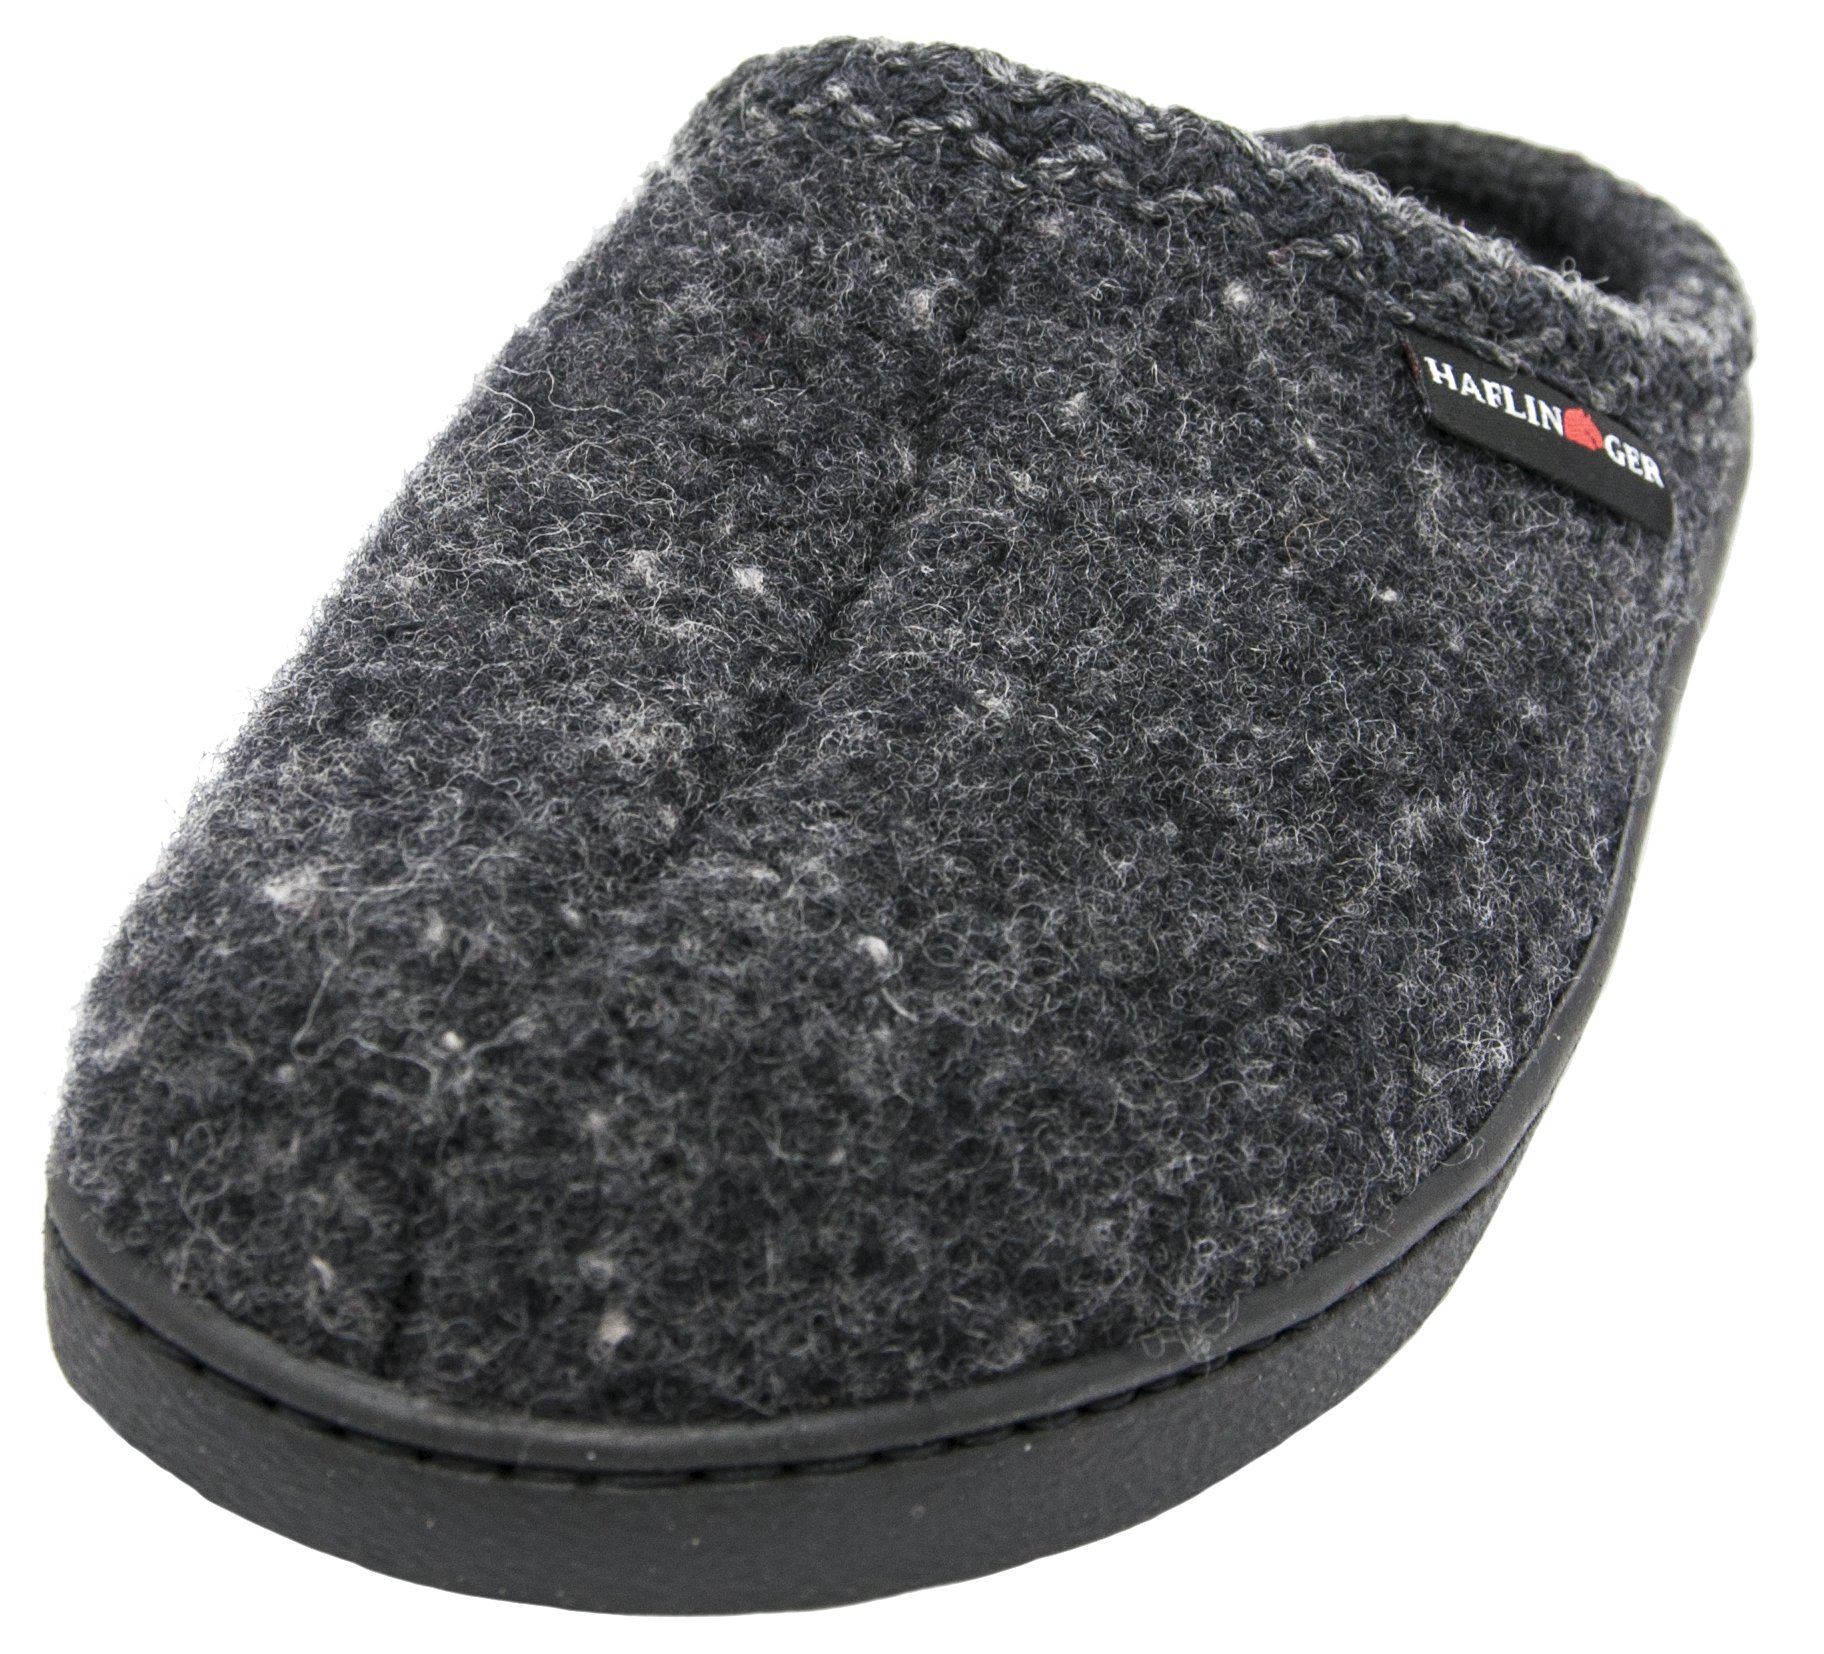 Haflinger Unisex AT Boiled Wool Hard Sole Slipper (42 M EU / 11 B(M) US, Dark Grey Speckle)